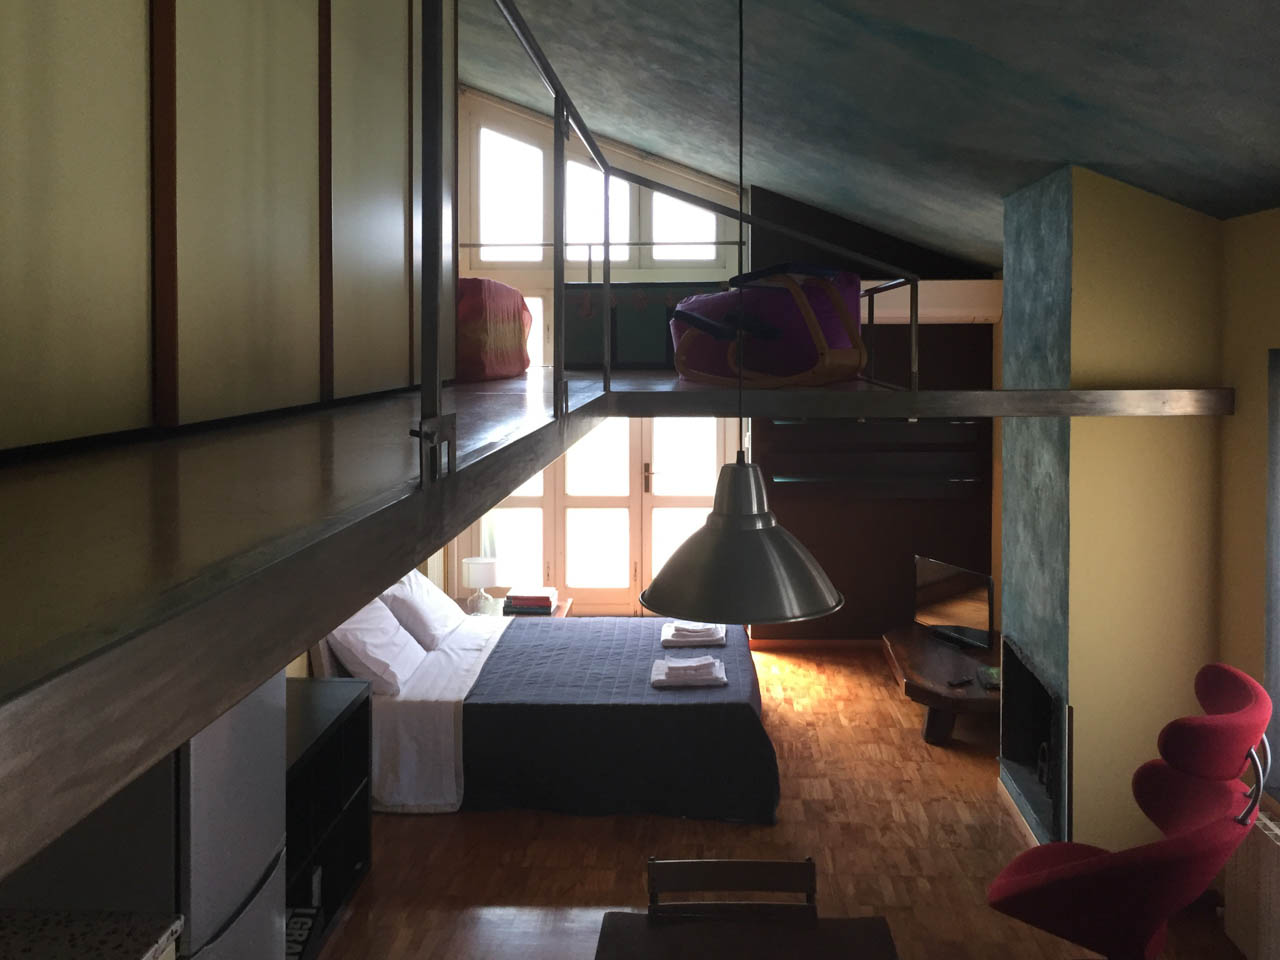 bed-and-breakfast-treviglio-camera-cielo-0010